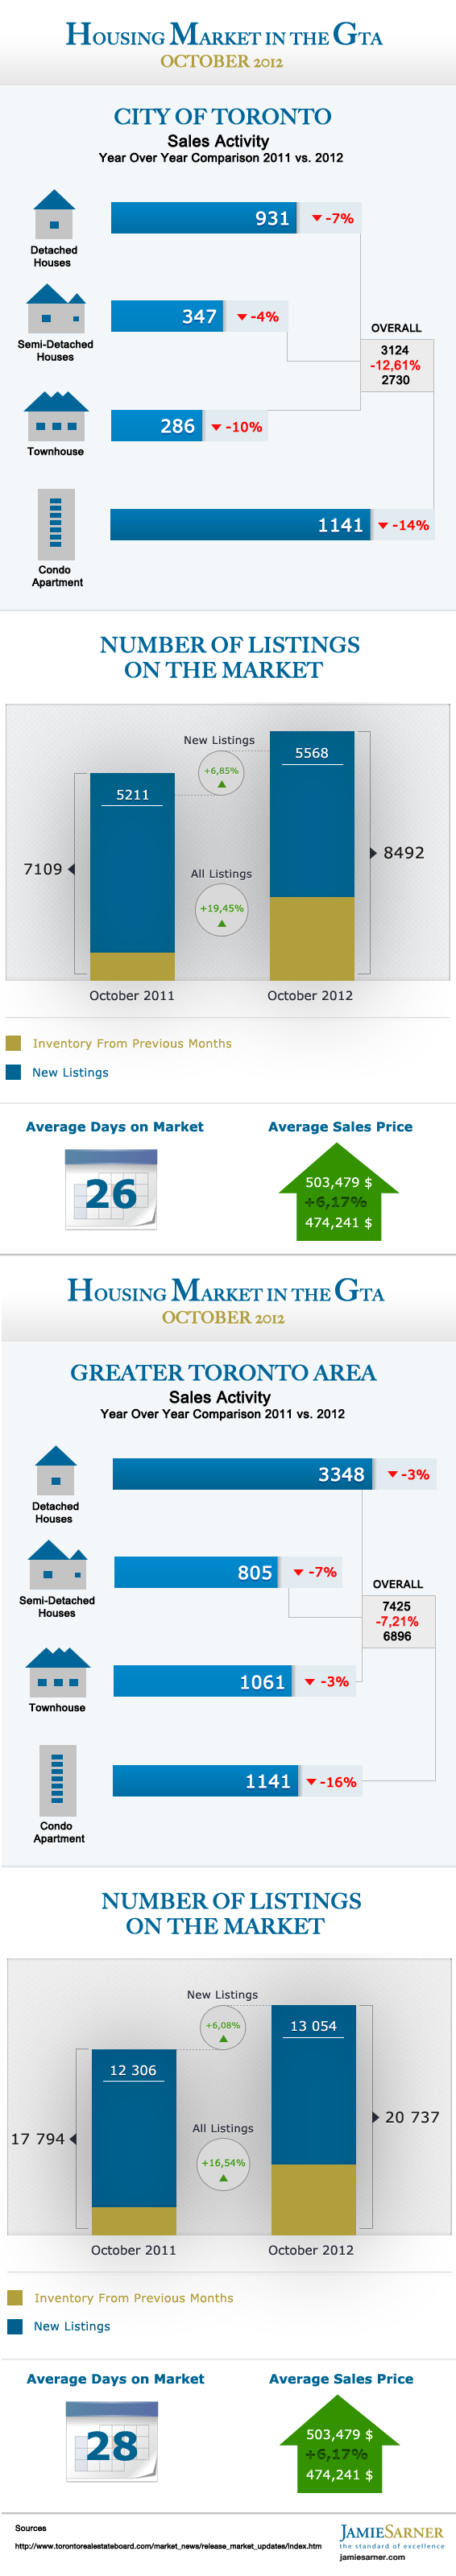 October 2012 Toronto Housing Market Stats Infographic